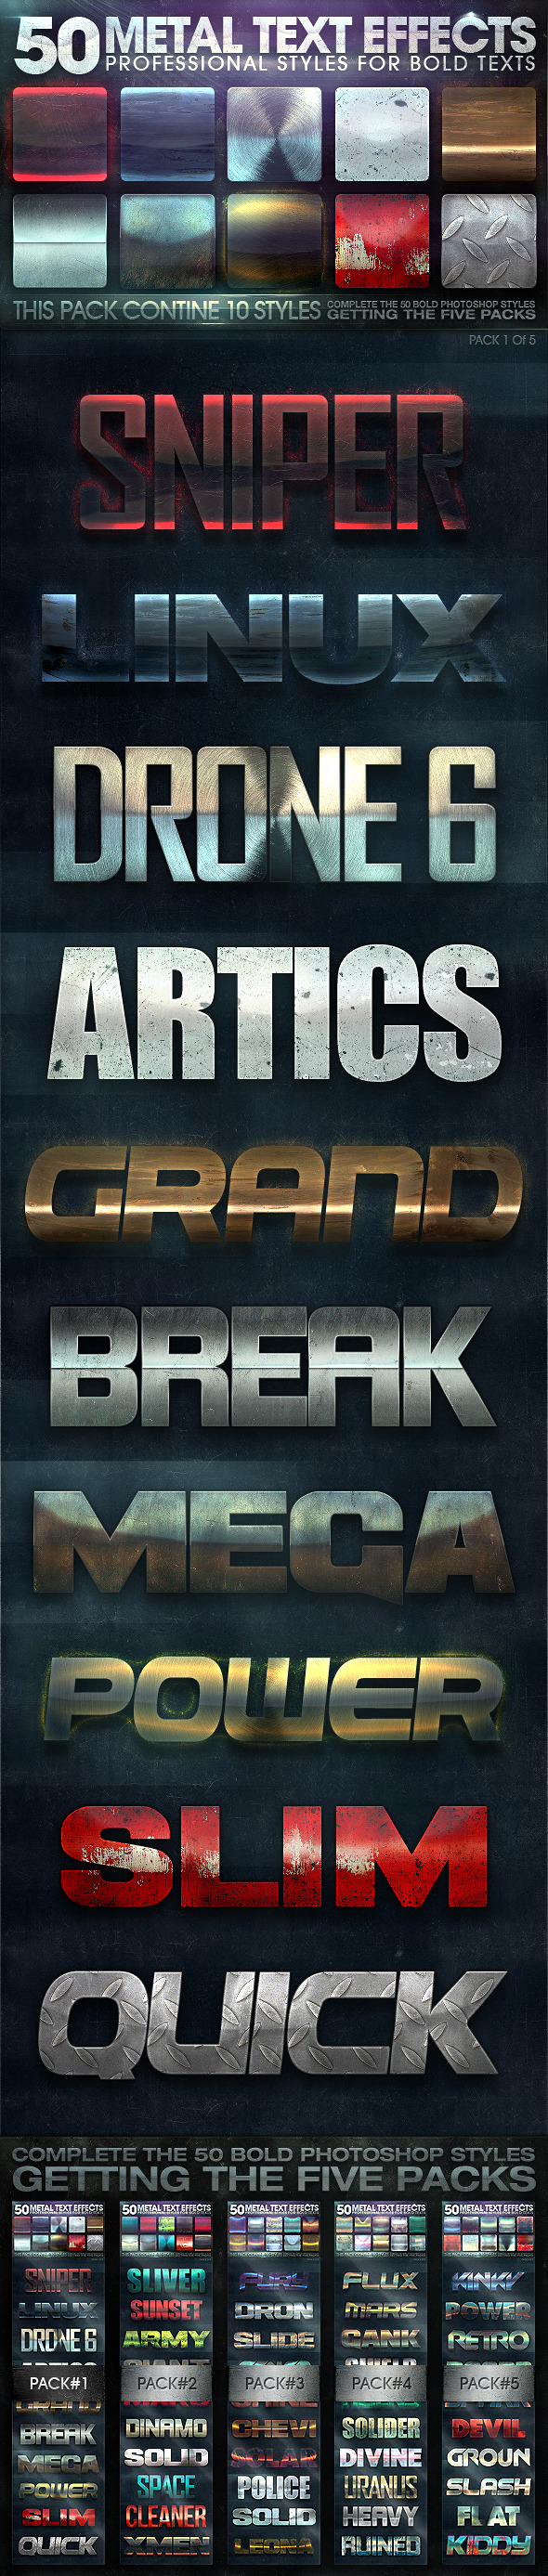 50 Metal Text Effects 1 of 5 - Text Effects Styles